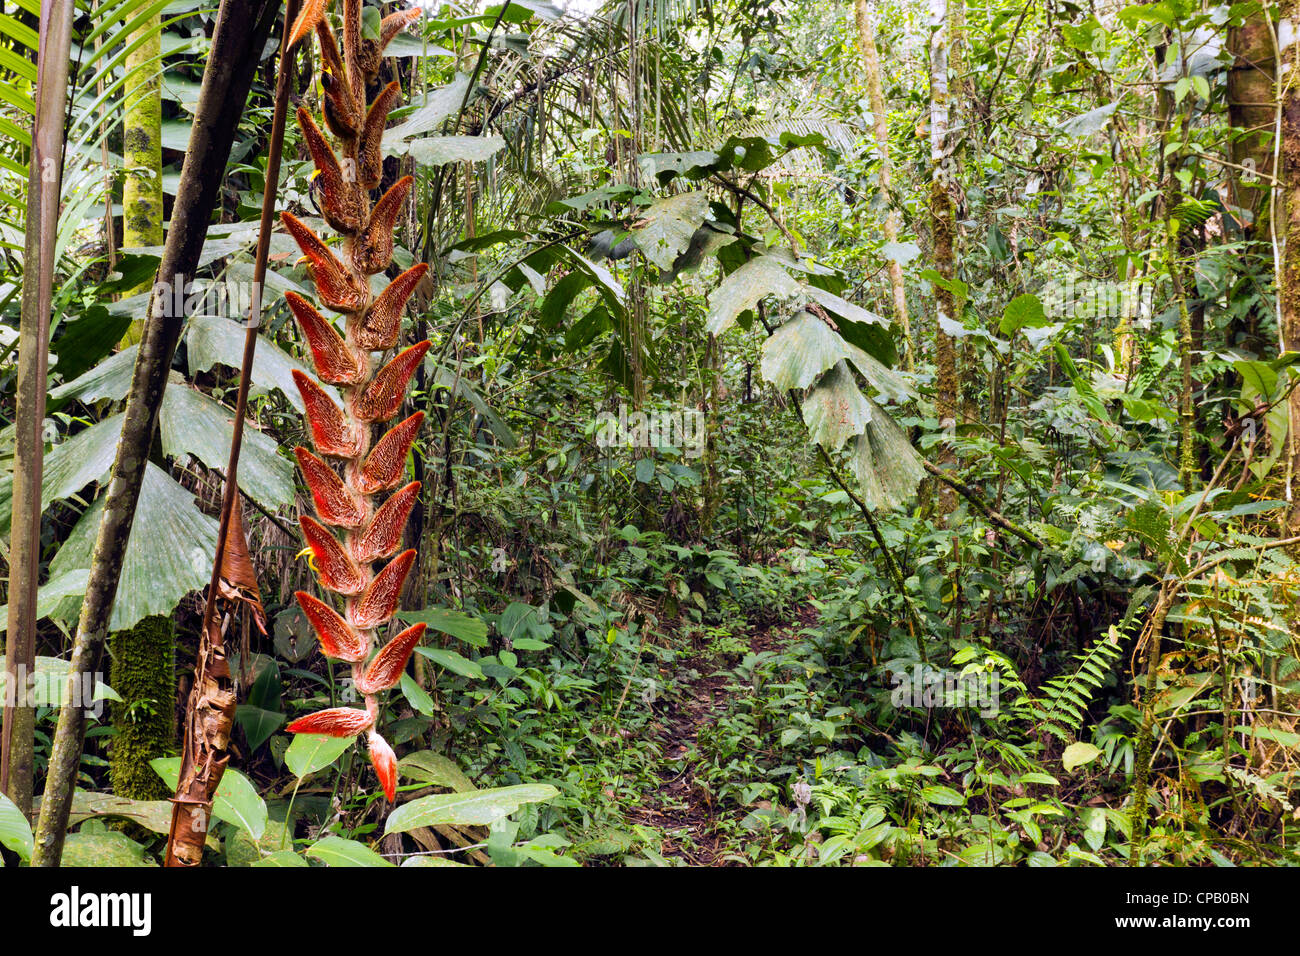 Hanging inflorescence of Heliconia velligera in tropical rainforest, Ecuador - Stock Image